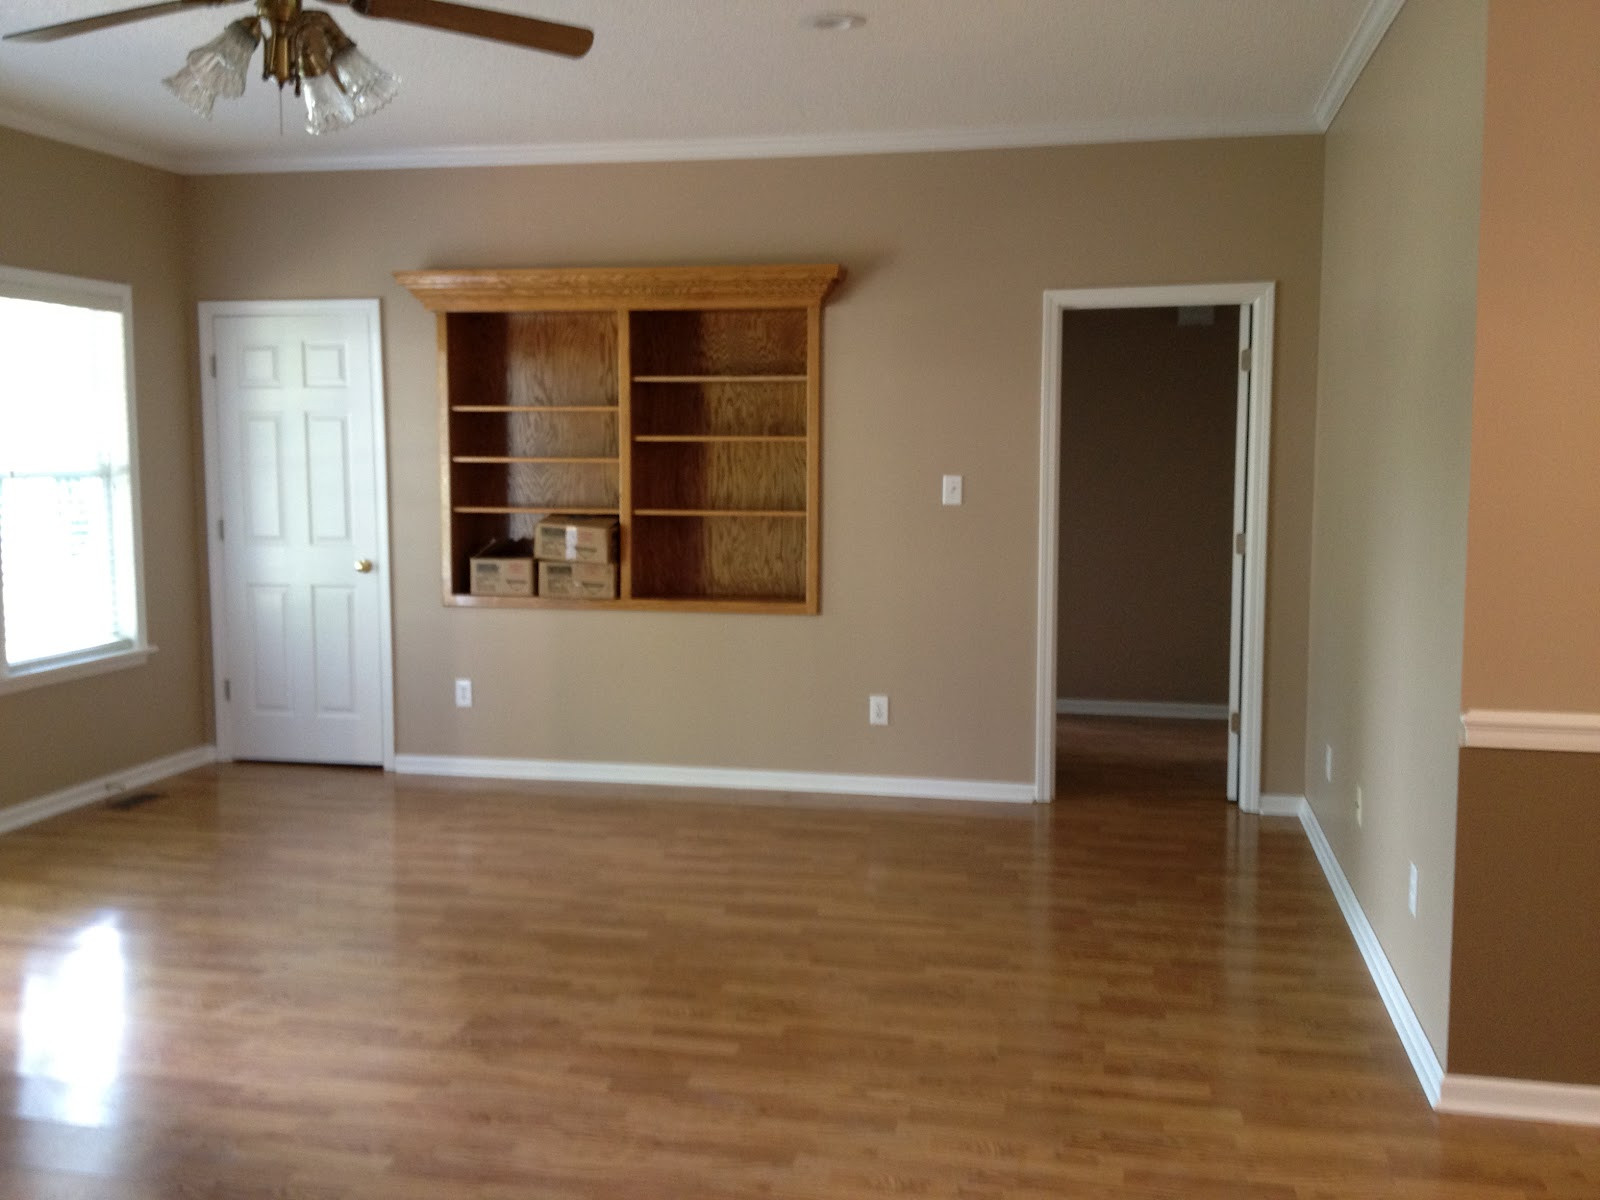 Best ideas about Tan Paint Colors . Save or Pin 36 Tan Paint Colors Living Rooms Living Room Beautiful Now.